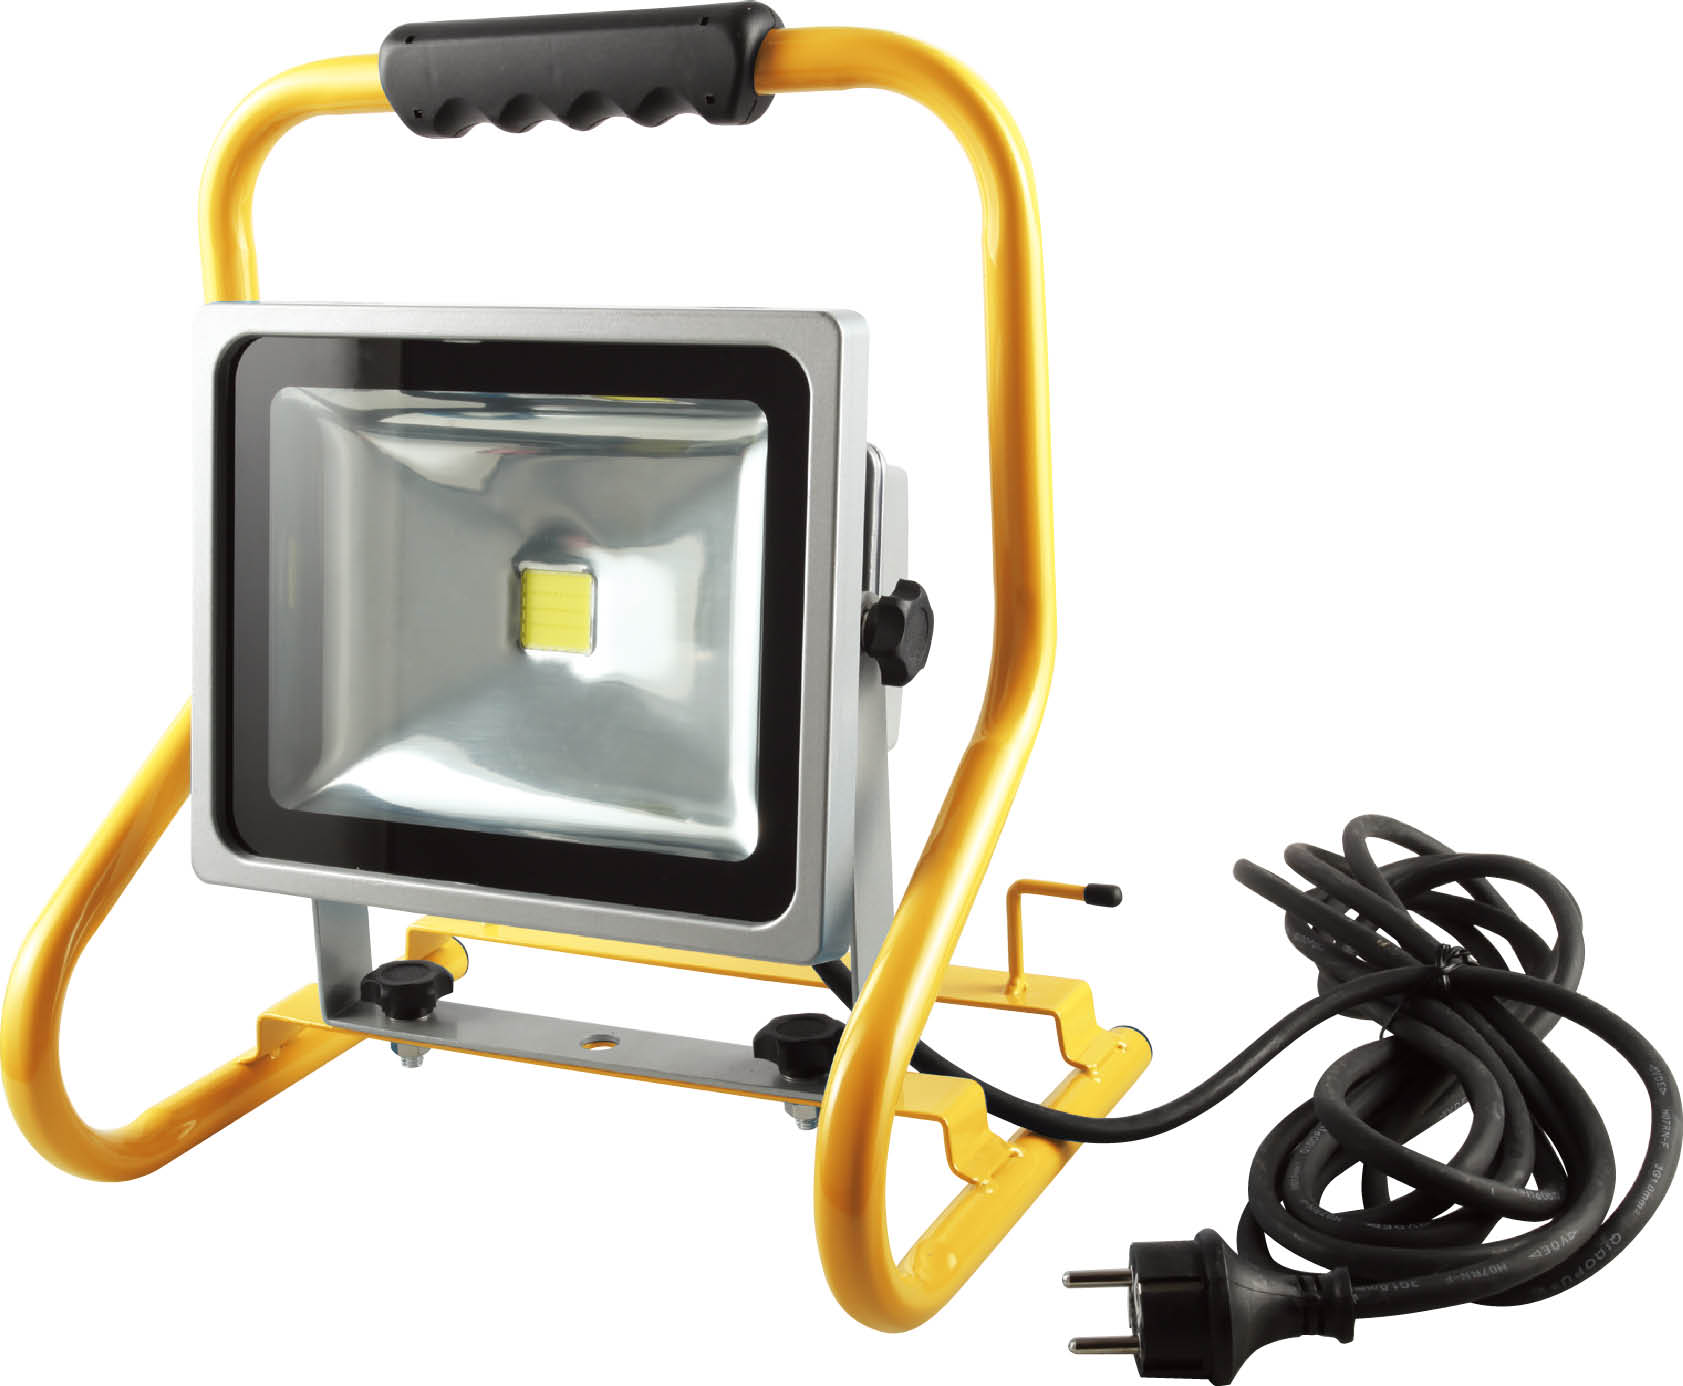 projecteur de chantier led 30w portable ip44 eclairage projecteur et baladeuse